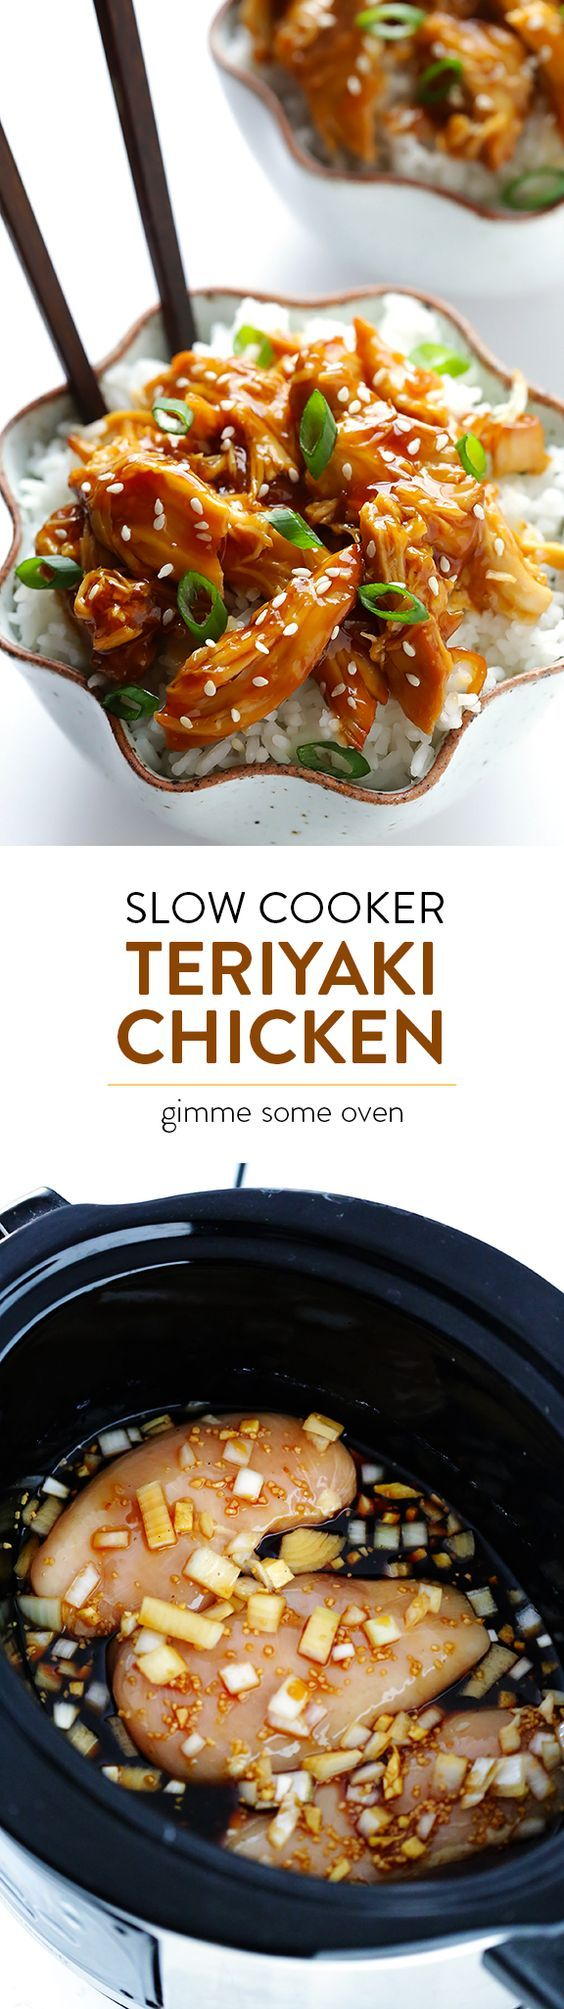 Slow Cooker Teriyaki Chicken -- all you need are 10 minutes to prep this delicious recipe, then let your slow cooker do the rest of the work! | gimmesomeoven.com